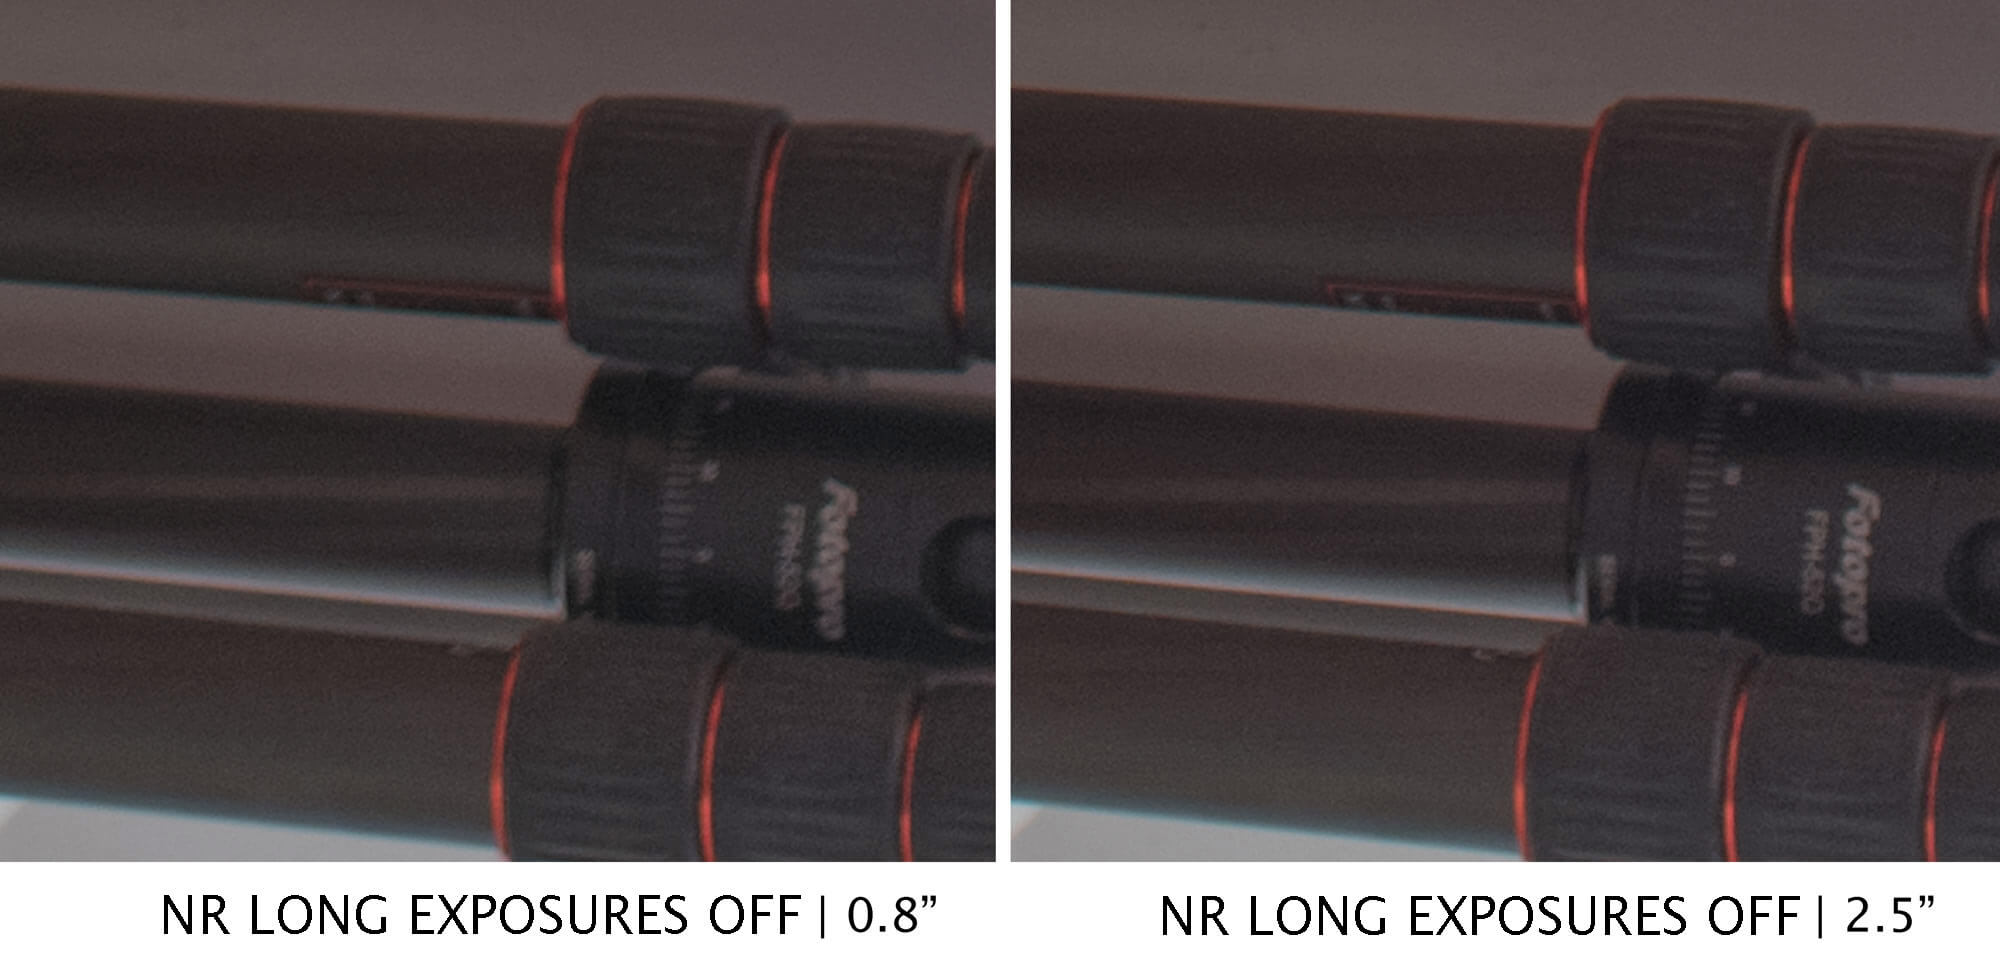 Nikon D850 noise reduction problem